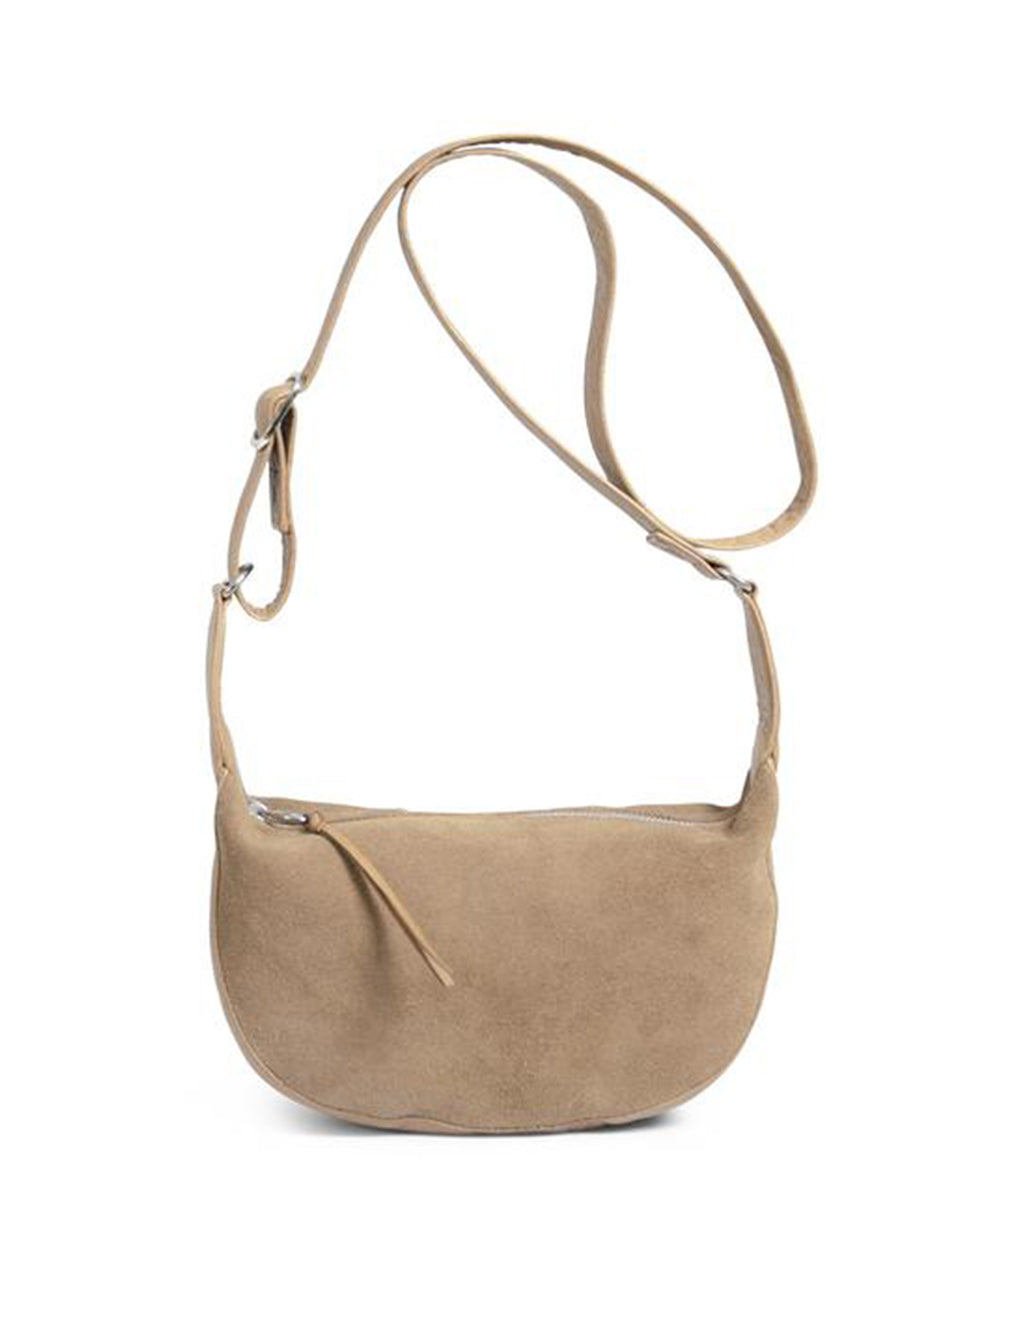 Kiana Crossbody in Natural